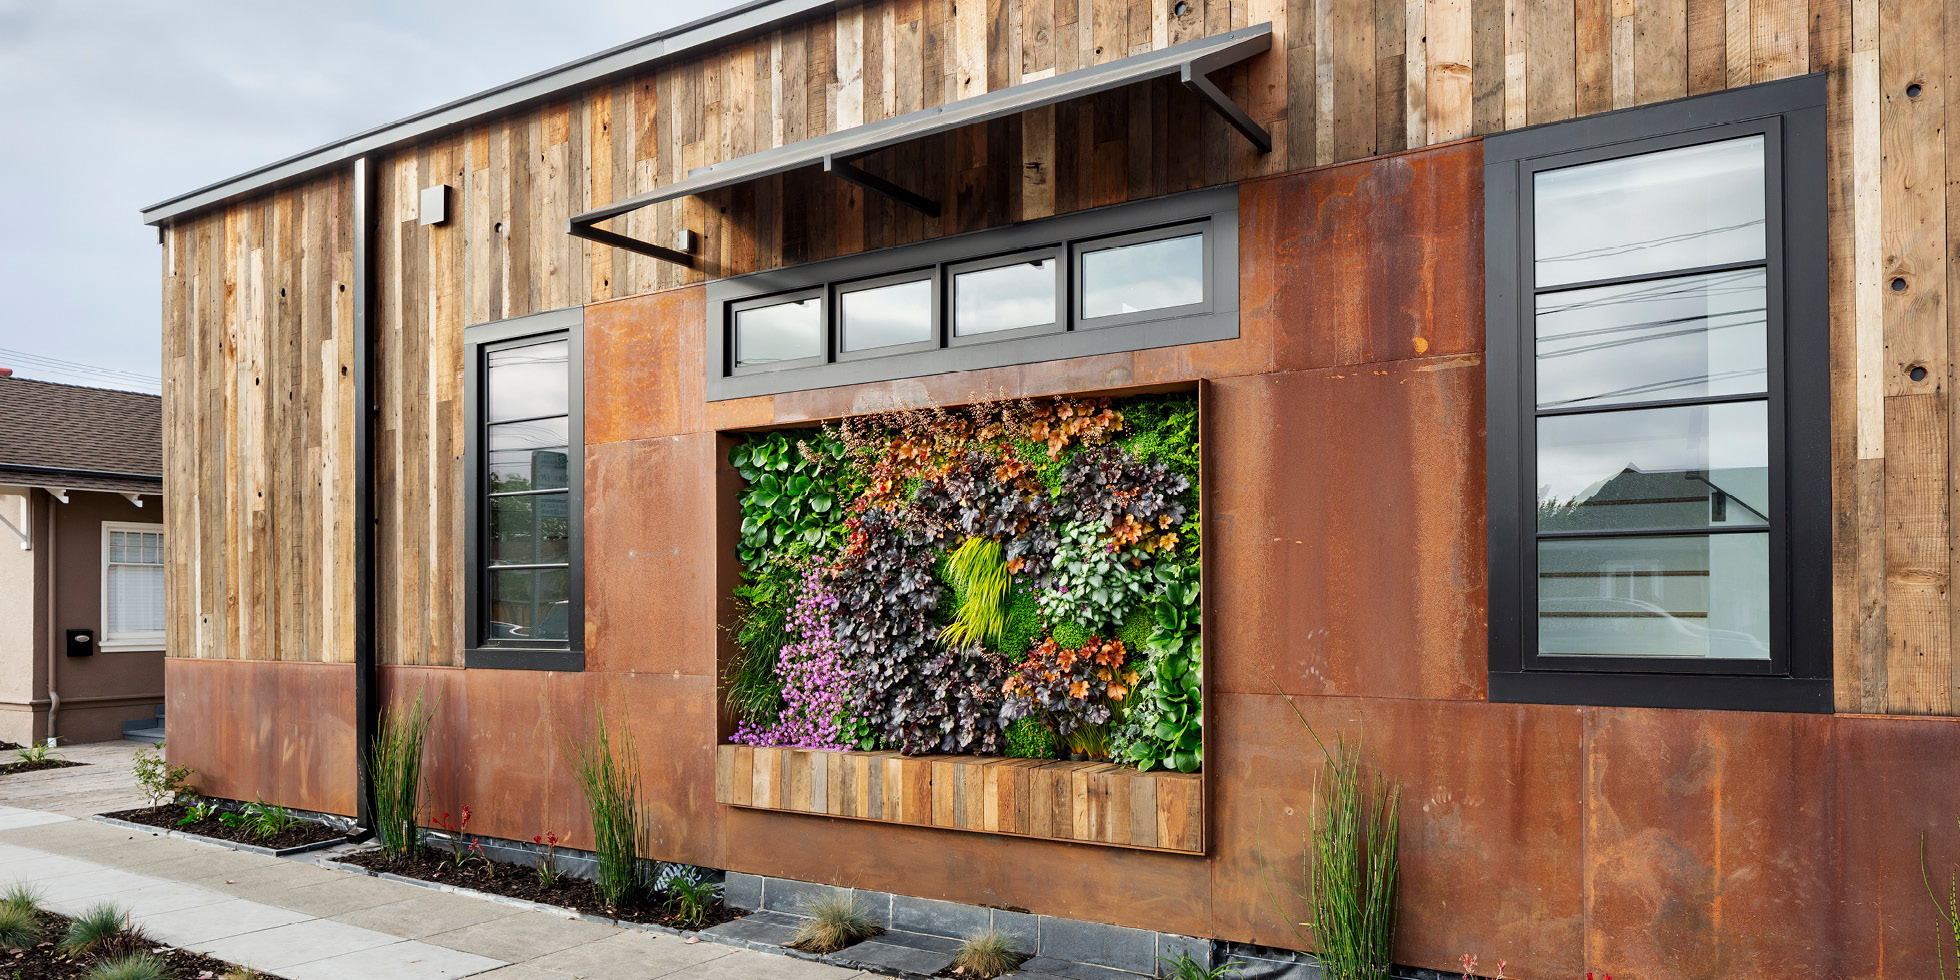 Redwood City Residence Living Wall by Habitat Horticulture - View 4